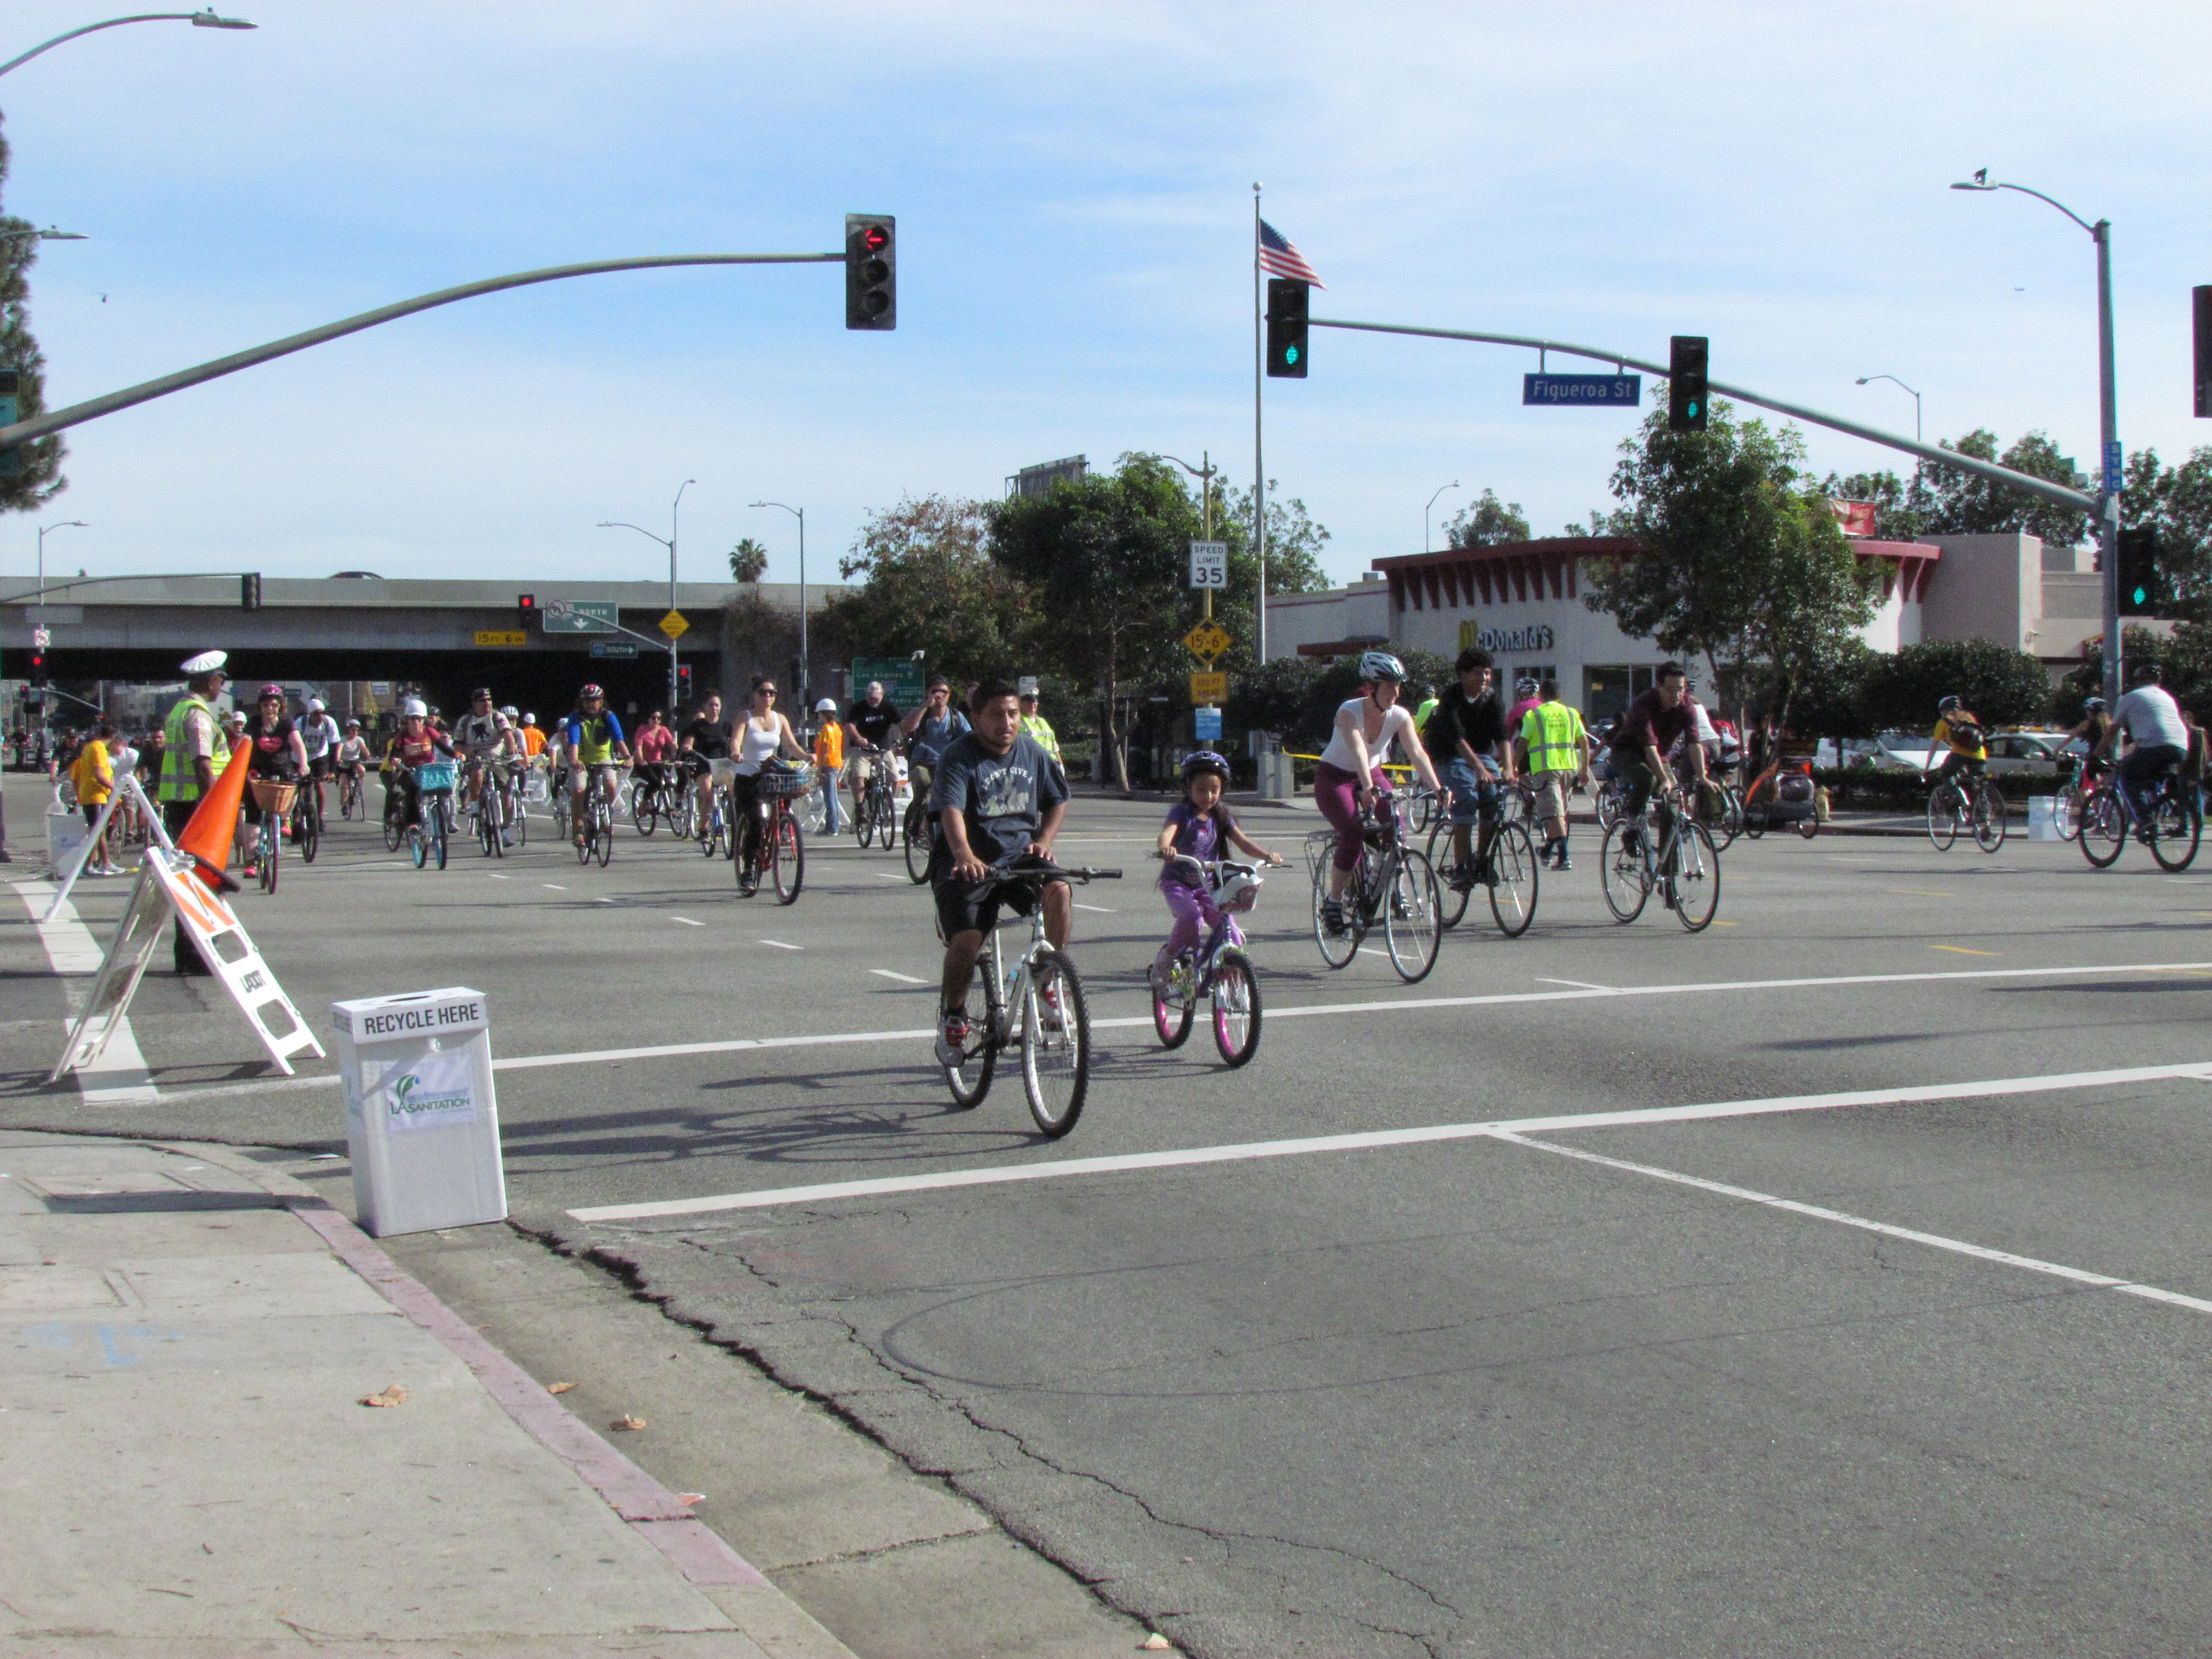 Ciclavia South LA: Figueroa street was open for cars, however Martin Luther King Jr was closed for cyclist and traffic was mitigated to allow them to pass.